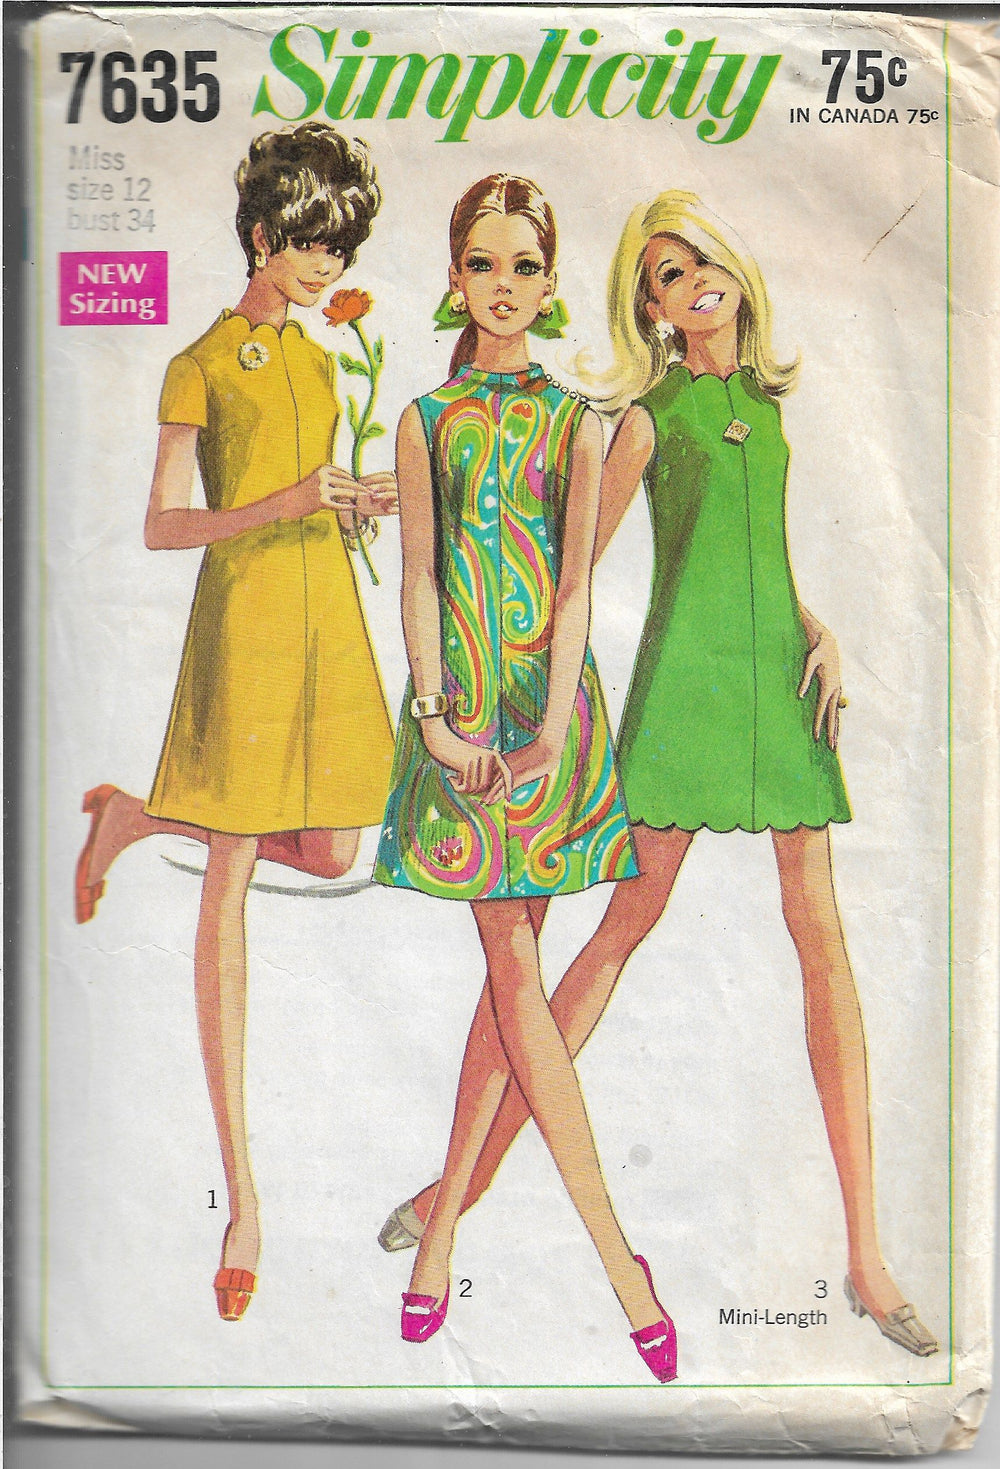 Simplicity 7635 Shortie Dress Vintage Sewing Pattern 1960s - VintageStitching - Vintage Sewing Patterns